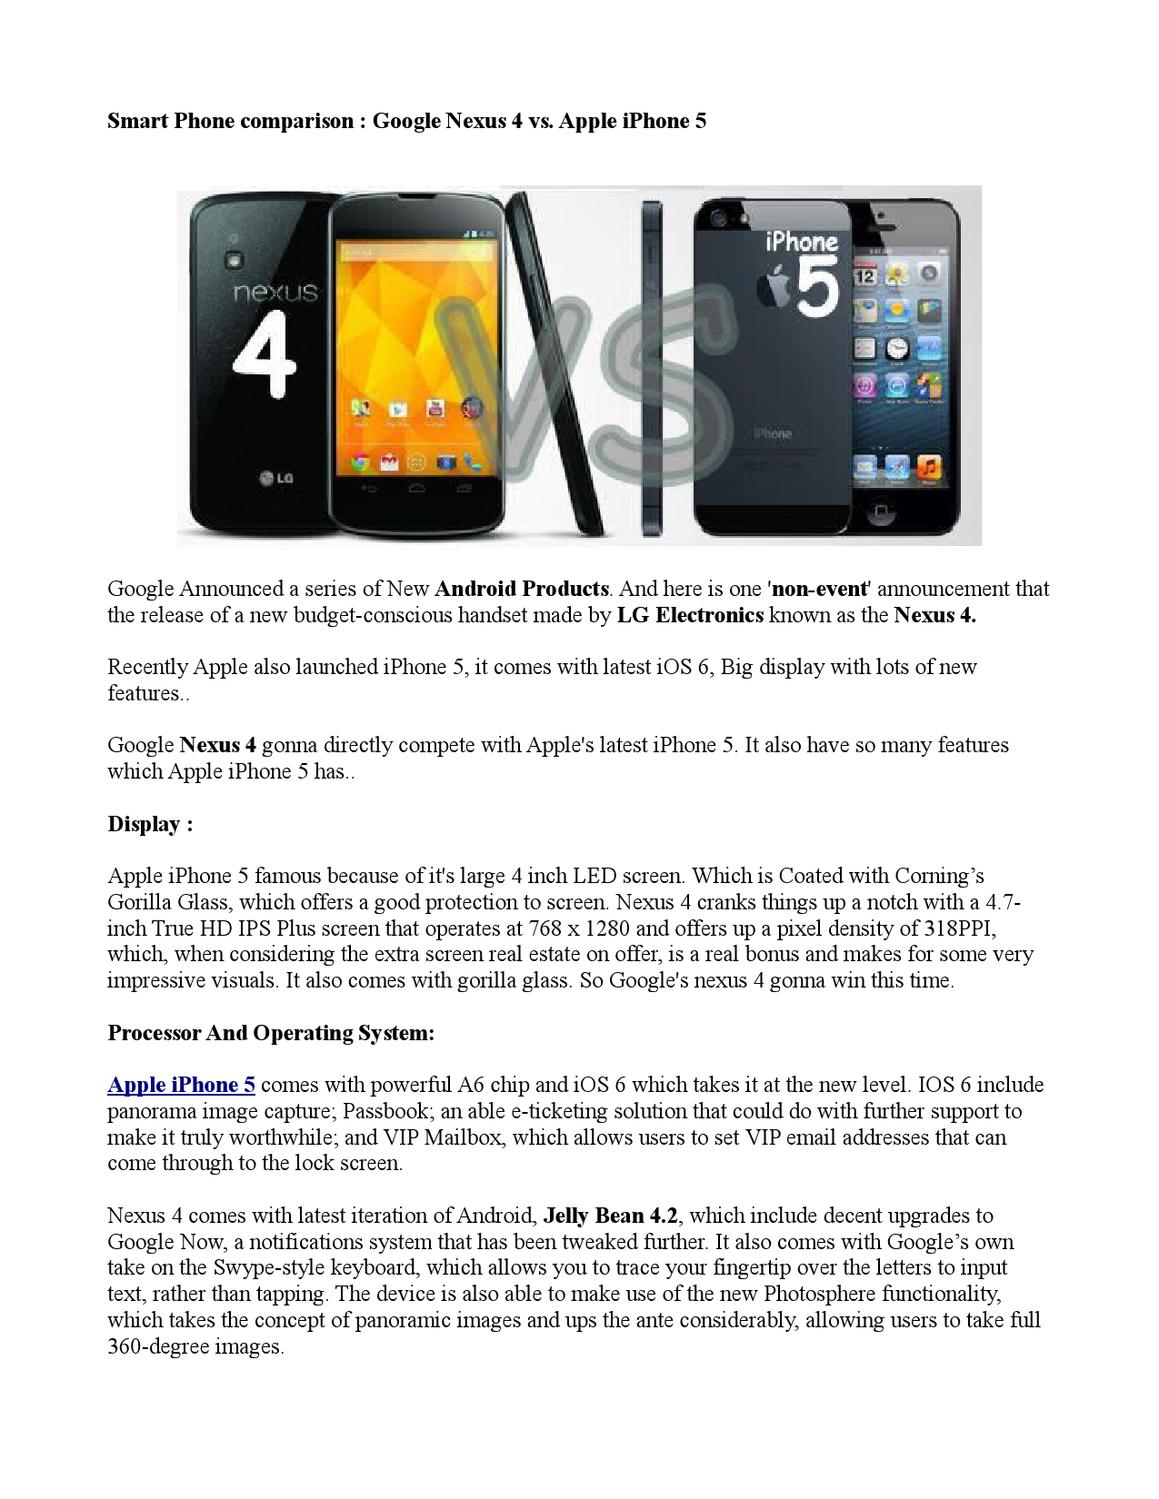 Smart Phone comparison Google Nexus 4 vs  Apple iPhone 5 by